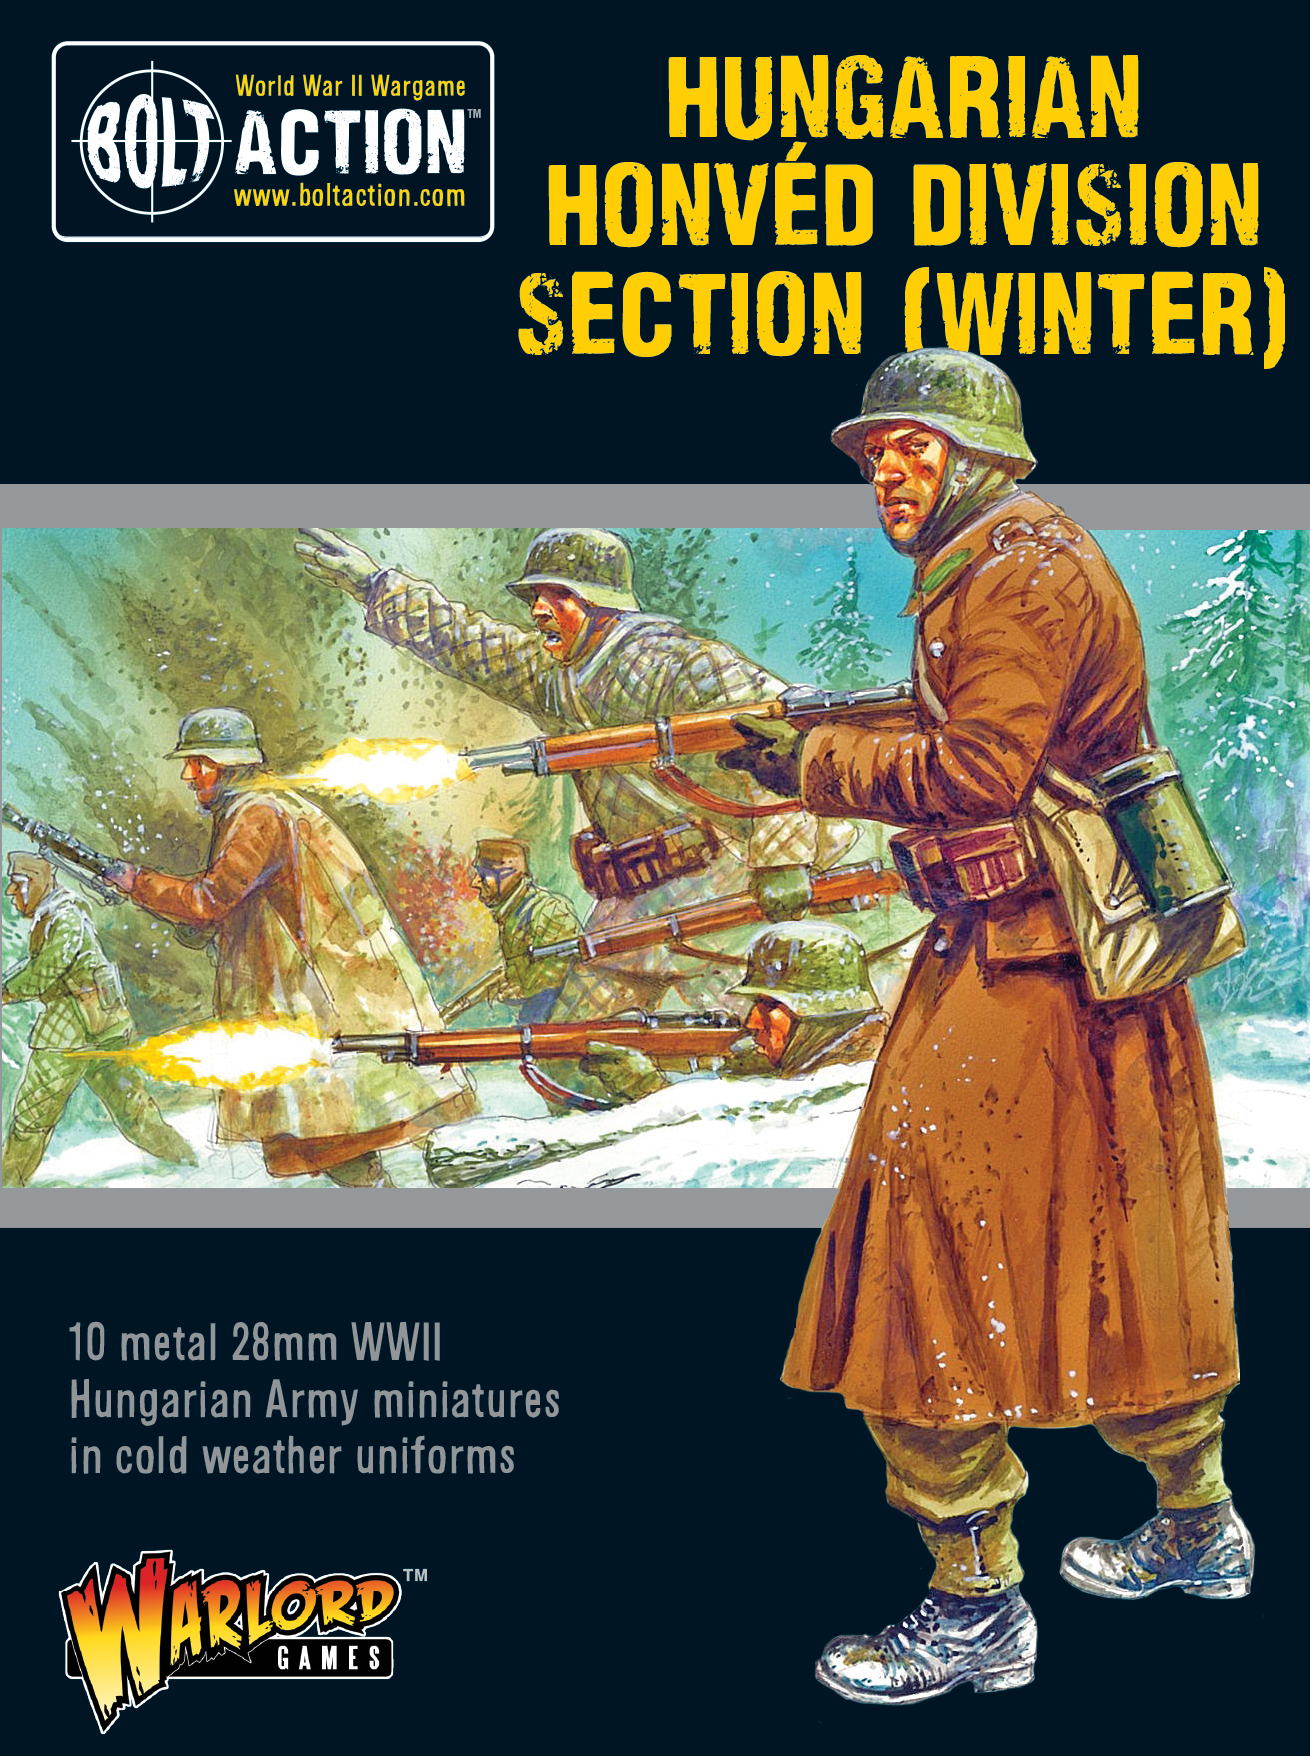 402217402-Hungarian-Army-Honved-Division-section-winter_box_front.jpg